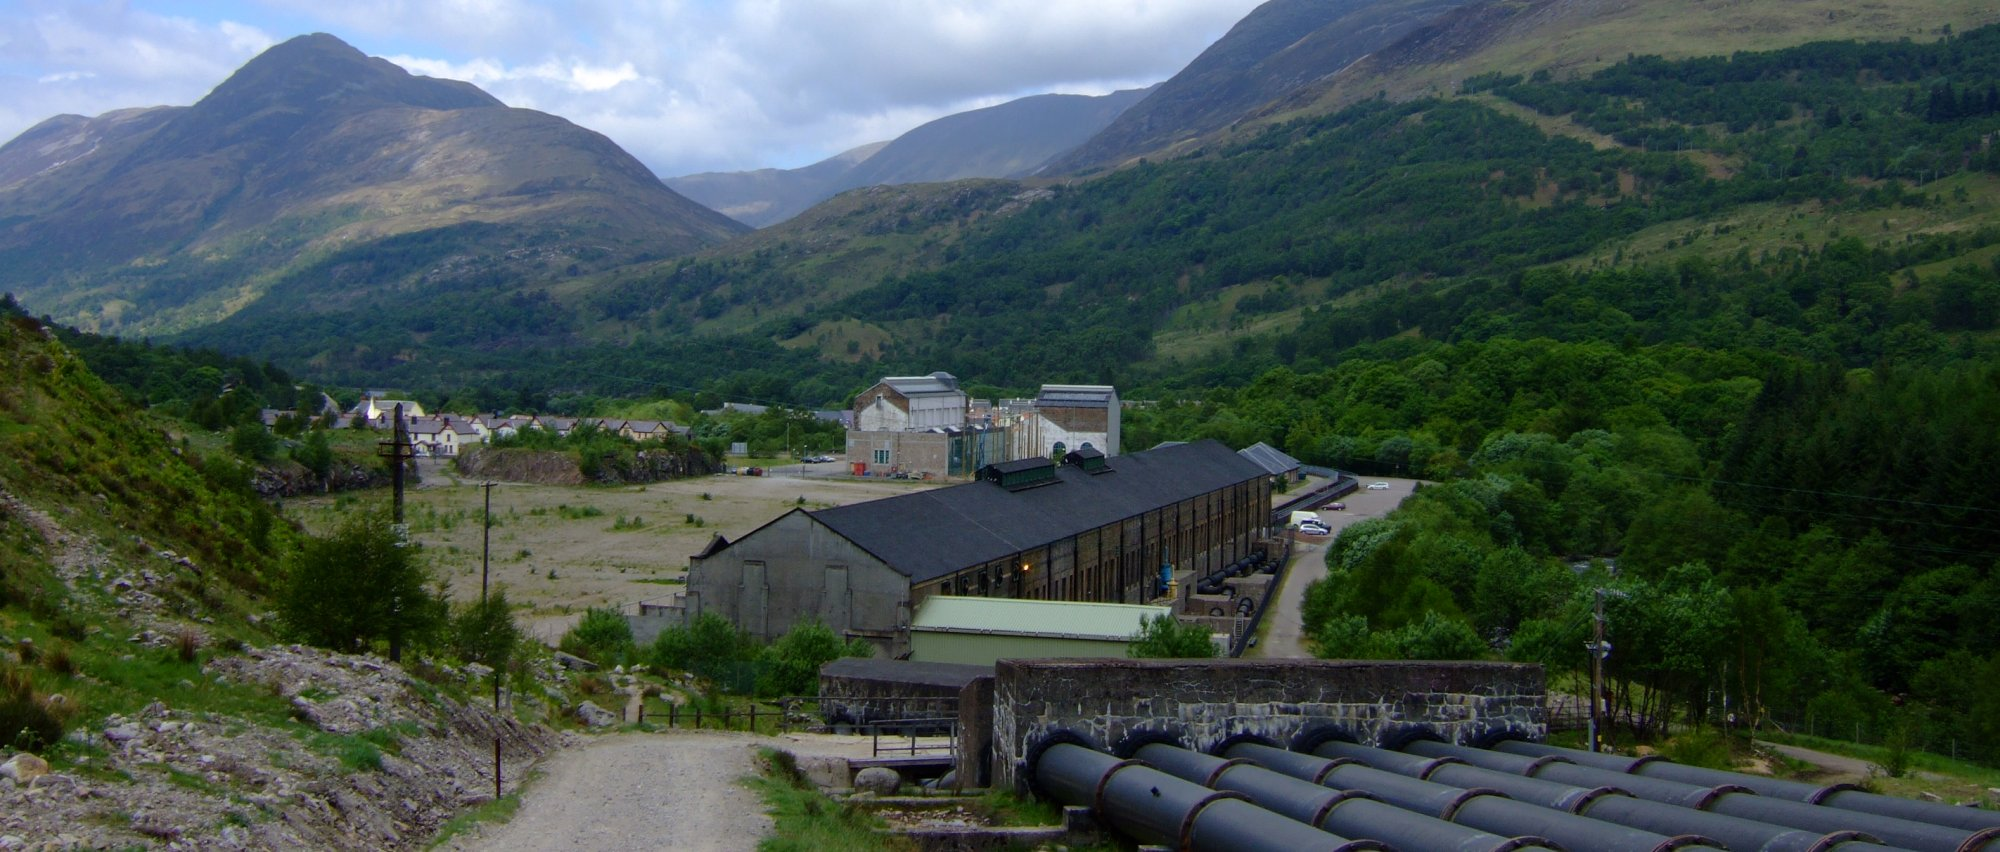 The industrial outskirts of Kinlochleven - not a pretty sight!